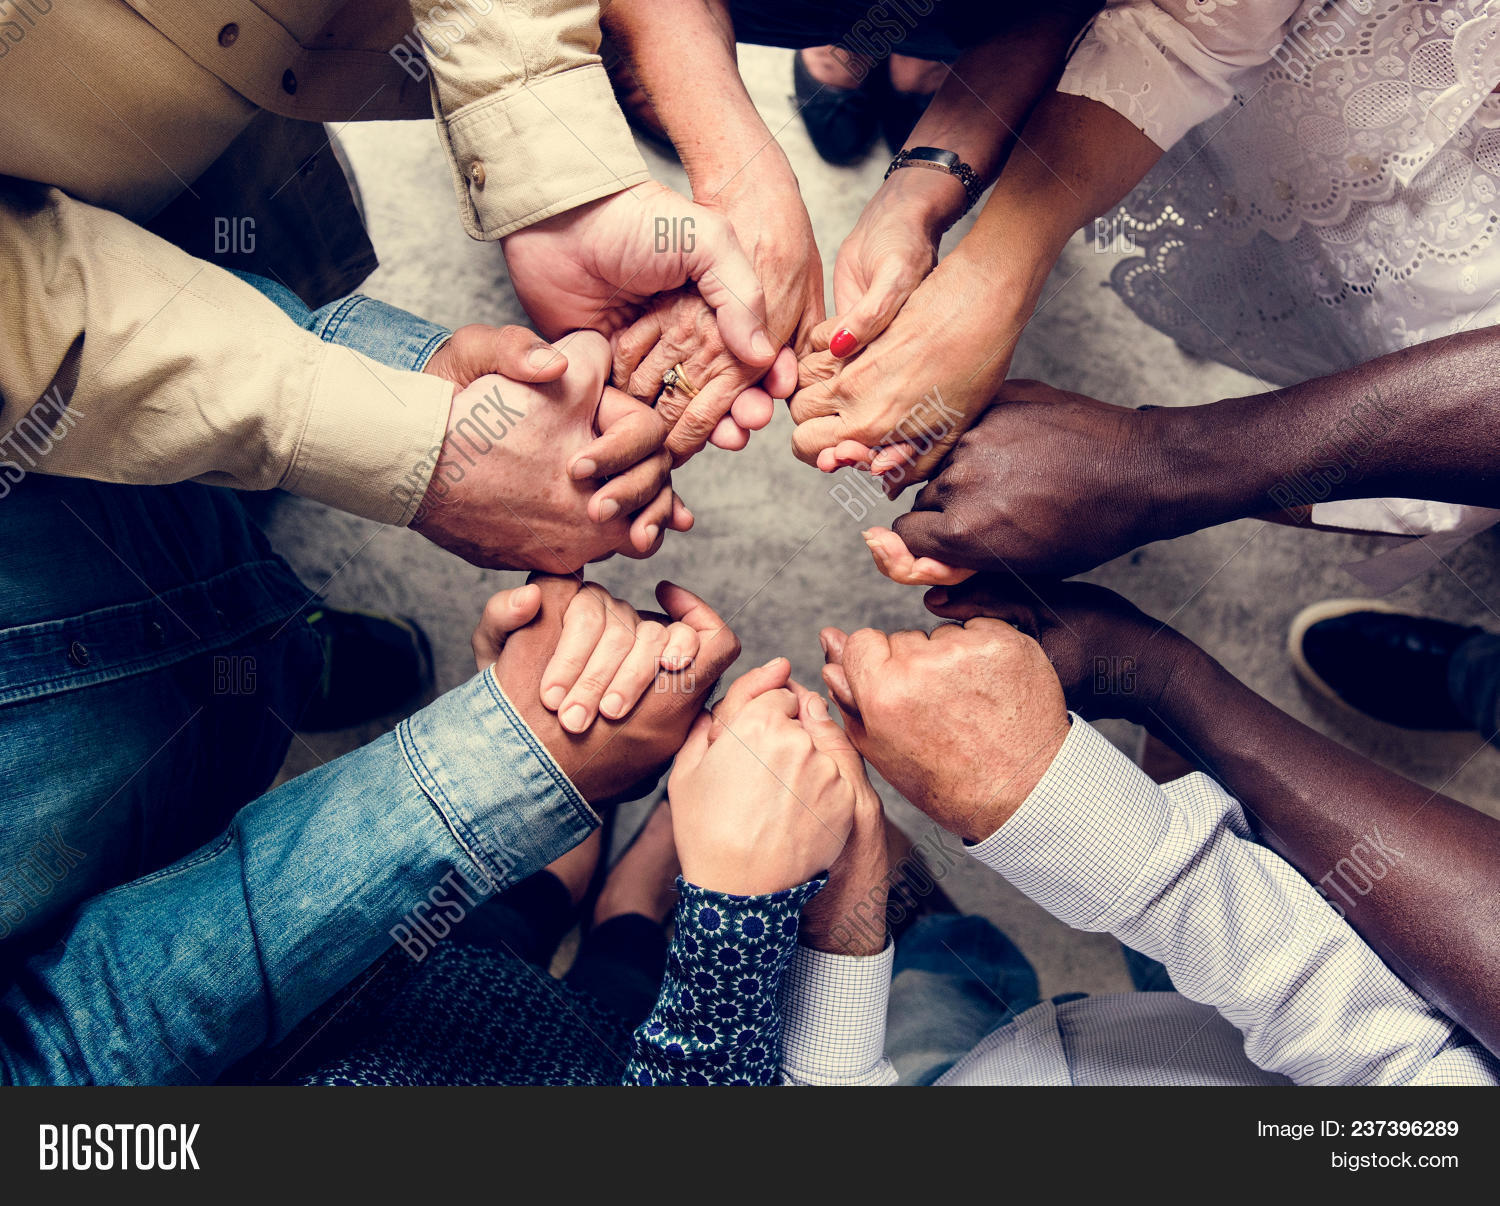 assemble,circle,closeup,community,diverse,gather,group,hands,help,holding,interaction,people,pray,support,team,teamwork,together,unity